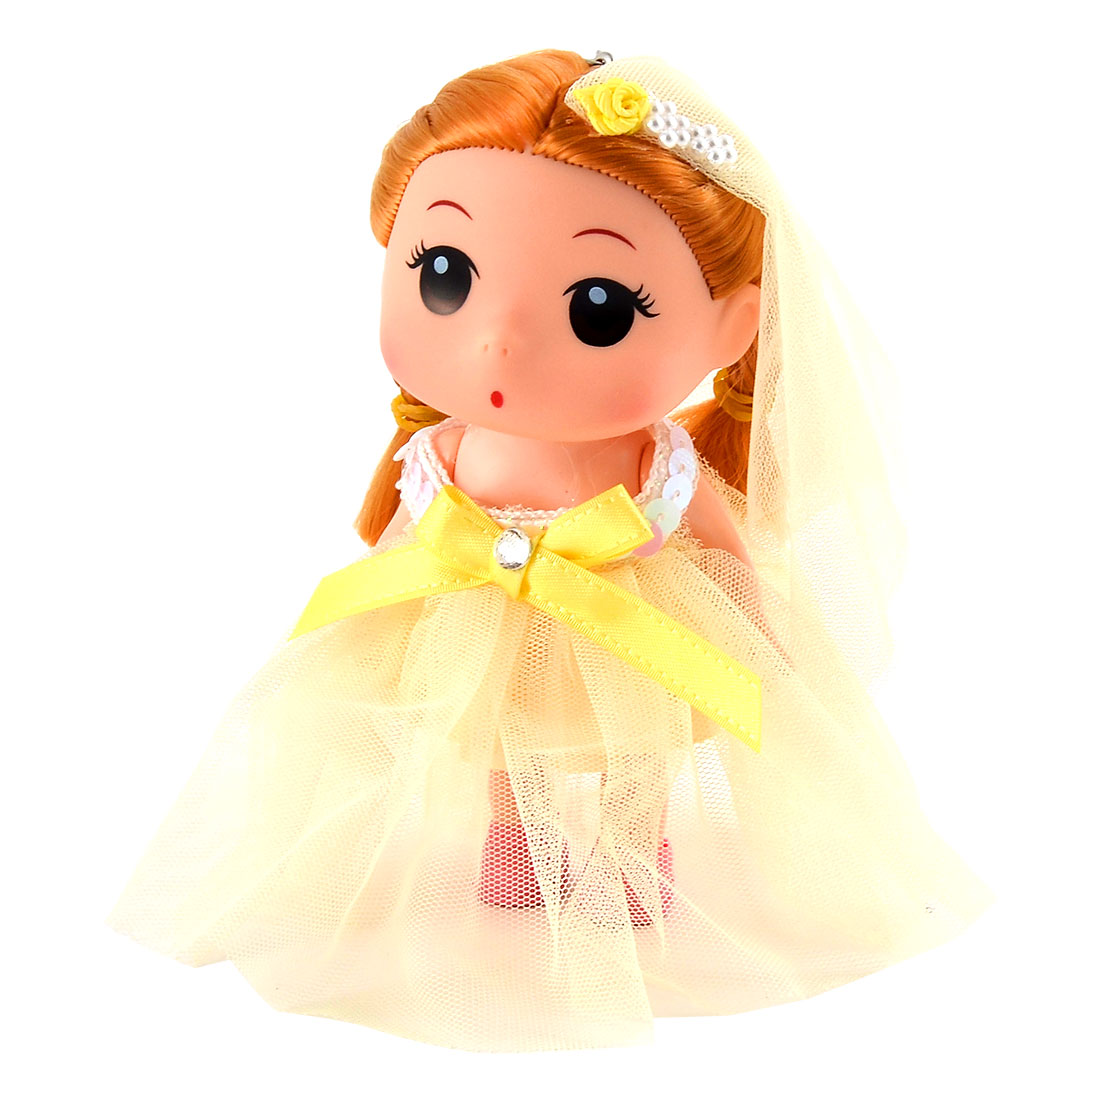 Girl Trunk Veil Dress Toy Decoration Strap Pendant Doll Keychain Key Ring Yellow